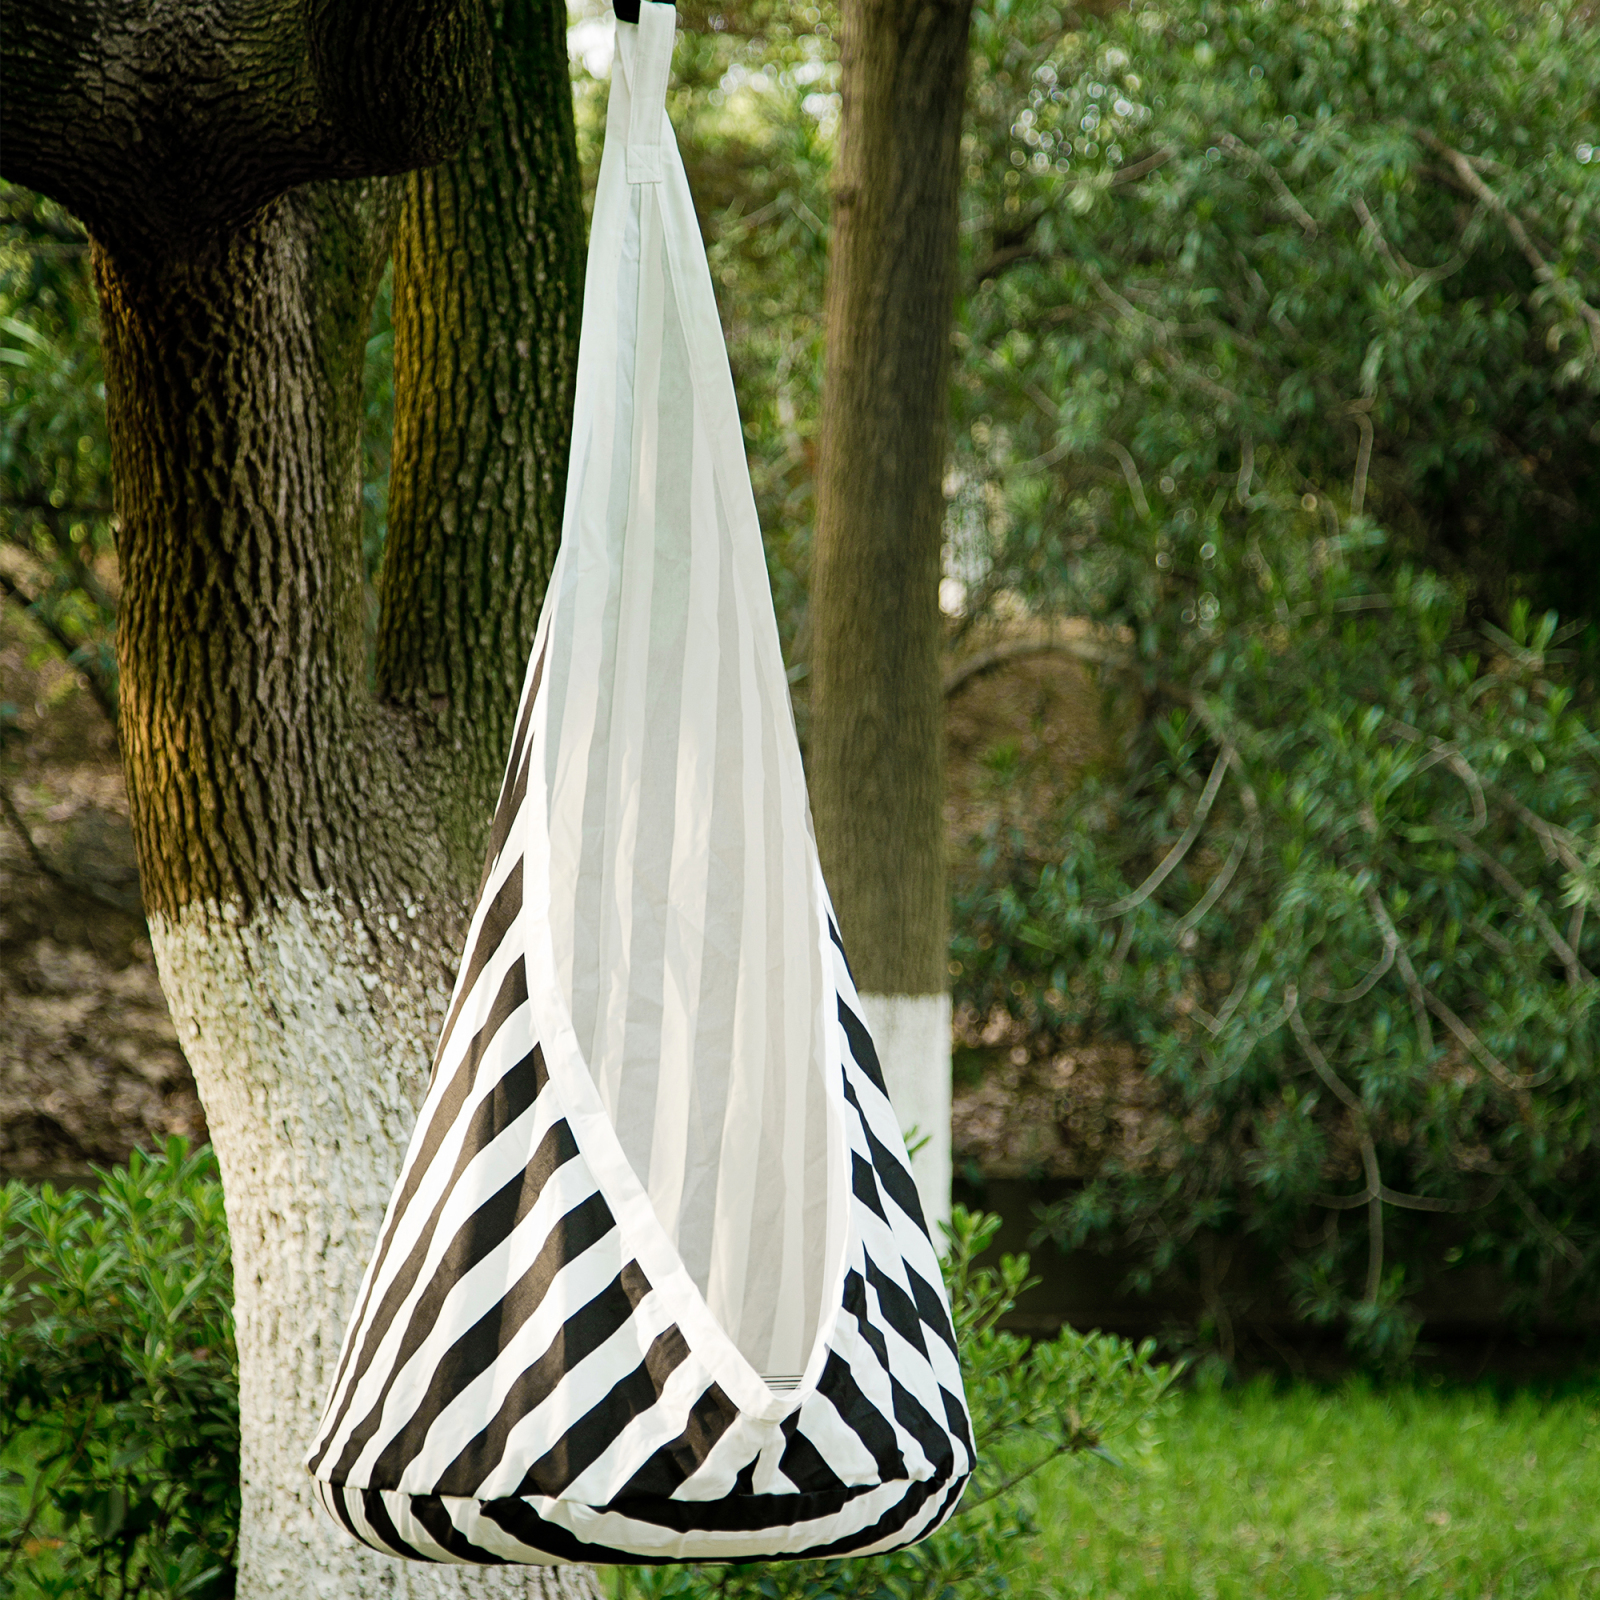 Samincom Kids Hanging Pod Swing Seat Hammock 100 Cotton Child Hammock Chair For Indoor And Outdoor Use White Black Stripe Walmart Com Walmart Com